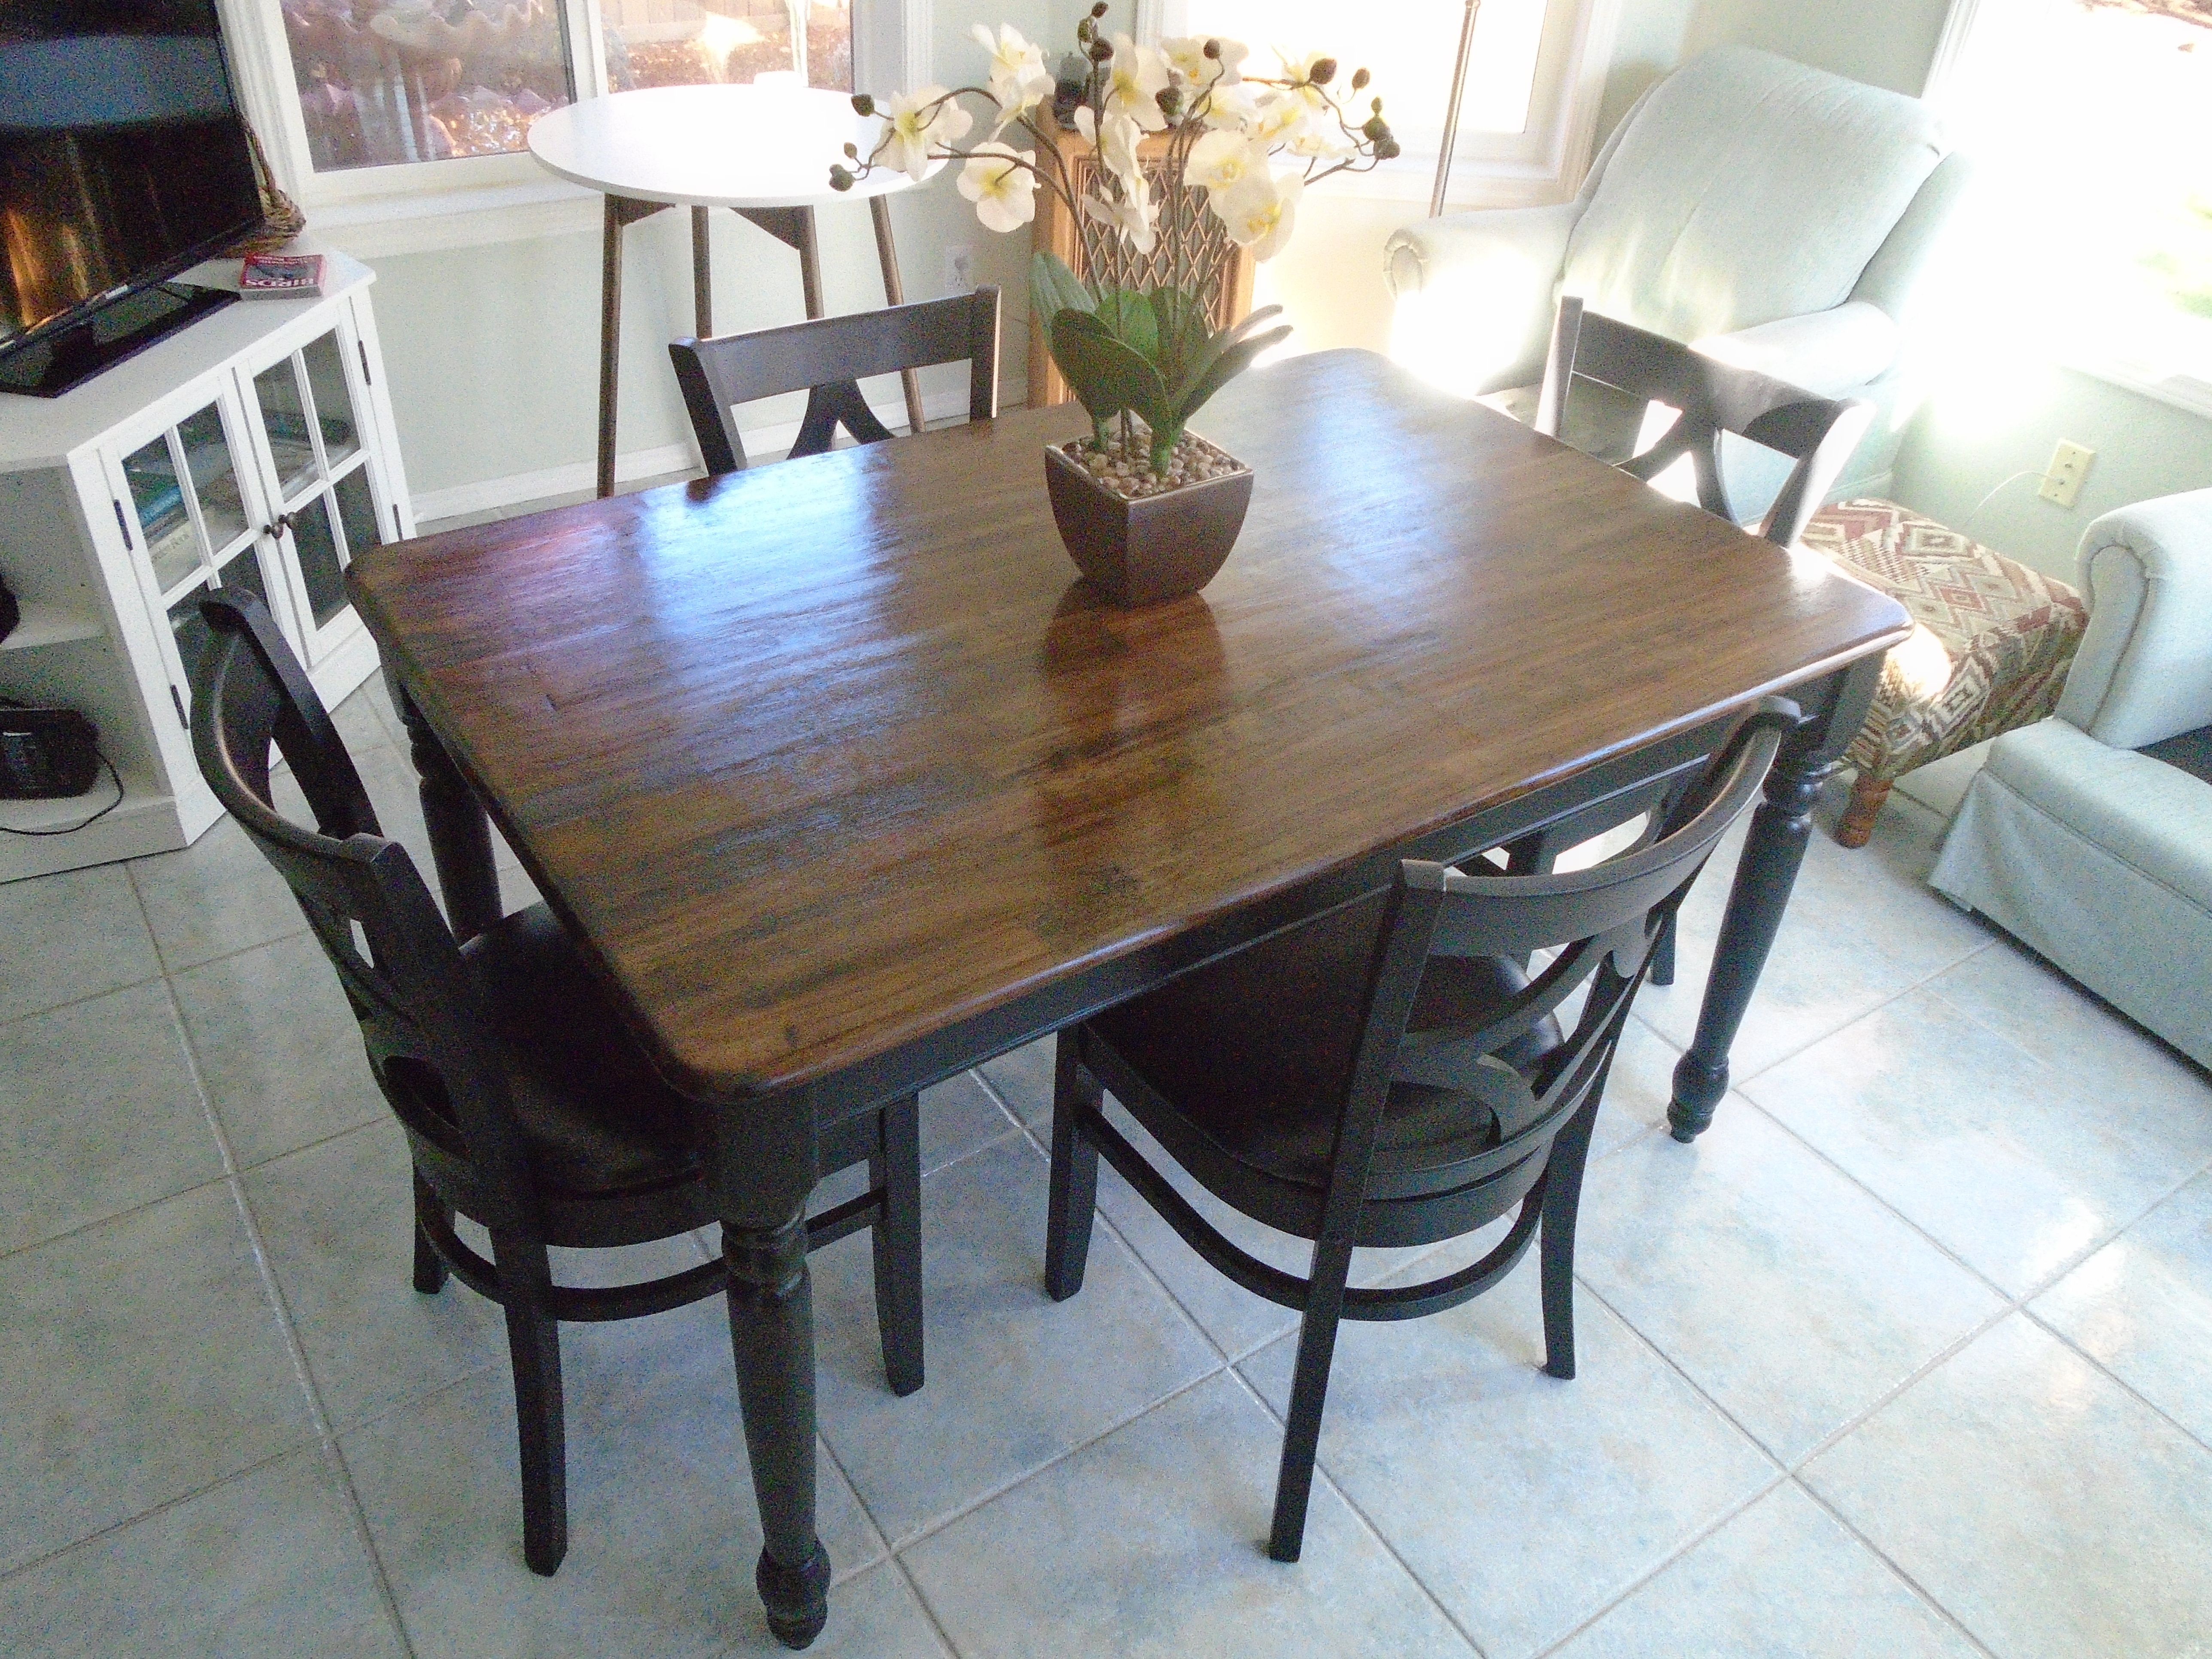 Black painted dining table - Rustic Farmhouse Table Brown Stained Top Black Painted Legs 4 Black Chairs Black